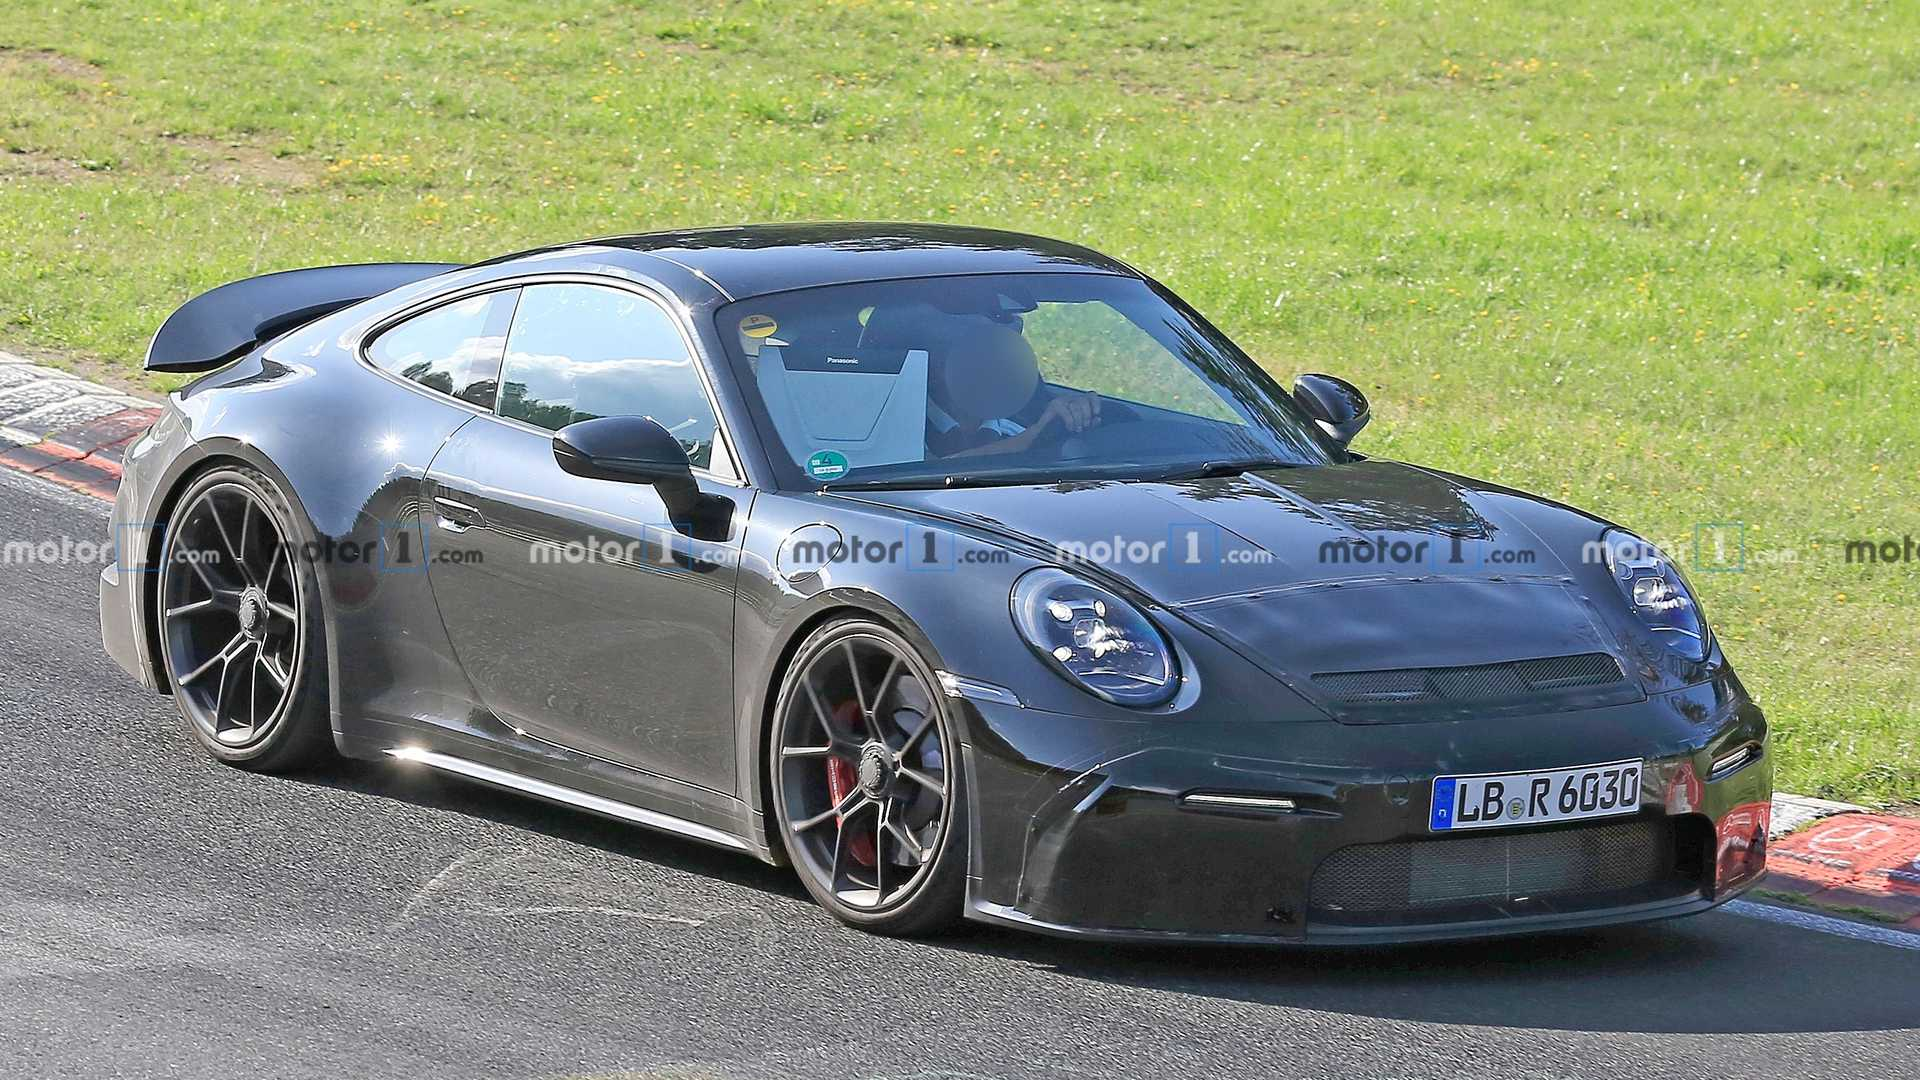 Porsche 911 Gt3 Touring Package Spied Showing New Details